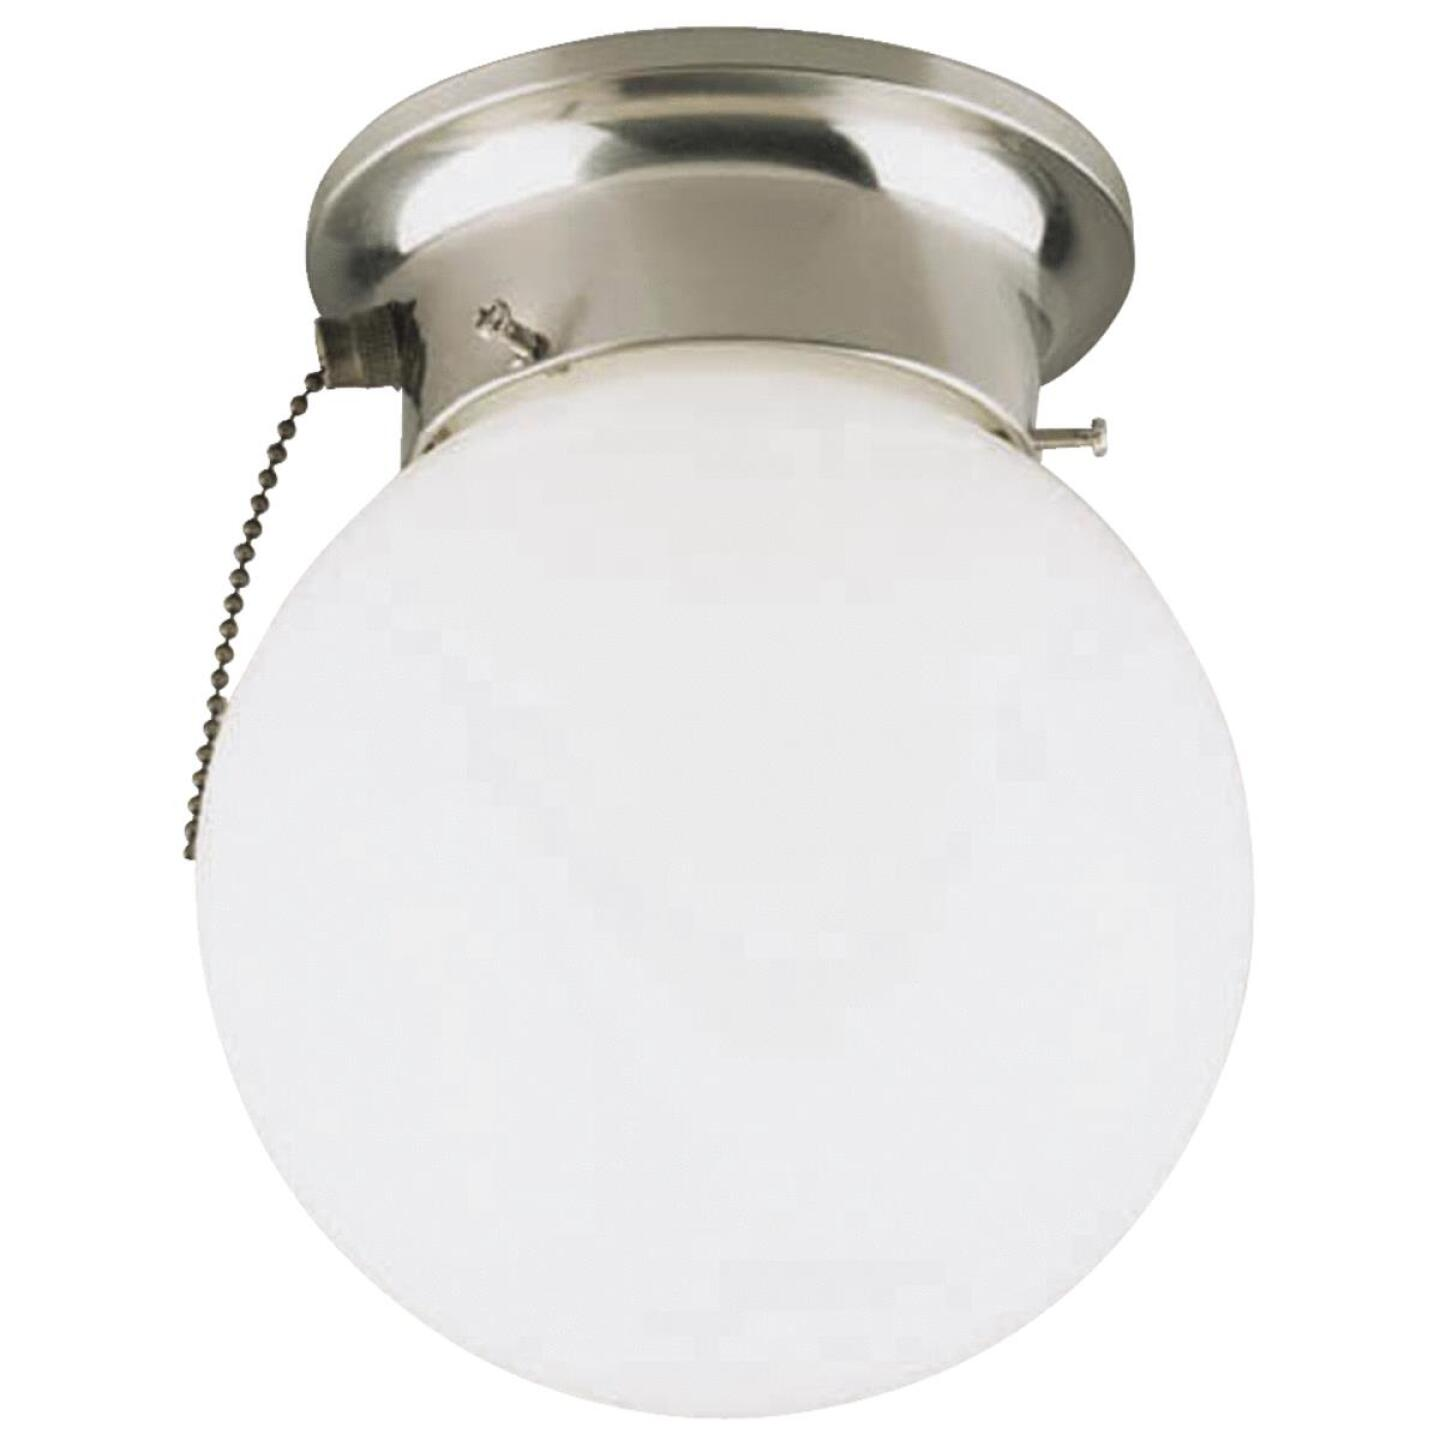 Home Impressions 6 In. Brushed Nickel Incandescent Flush Mount Ceiling Light Fixture with Pull Chain Image 1